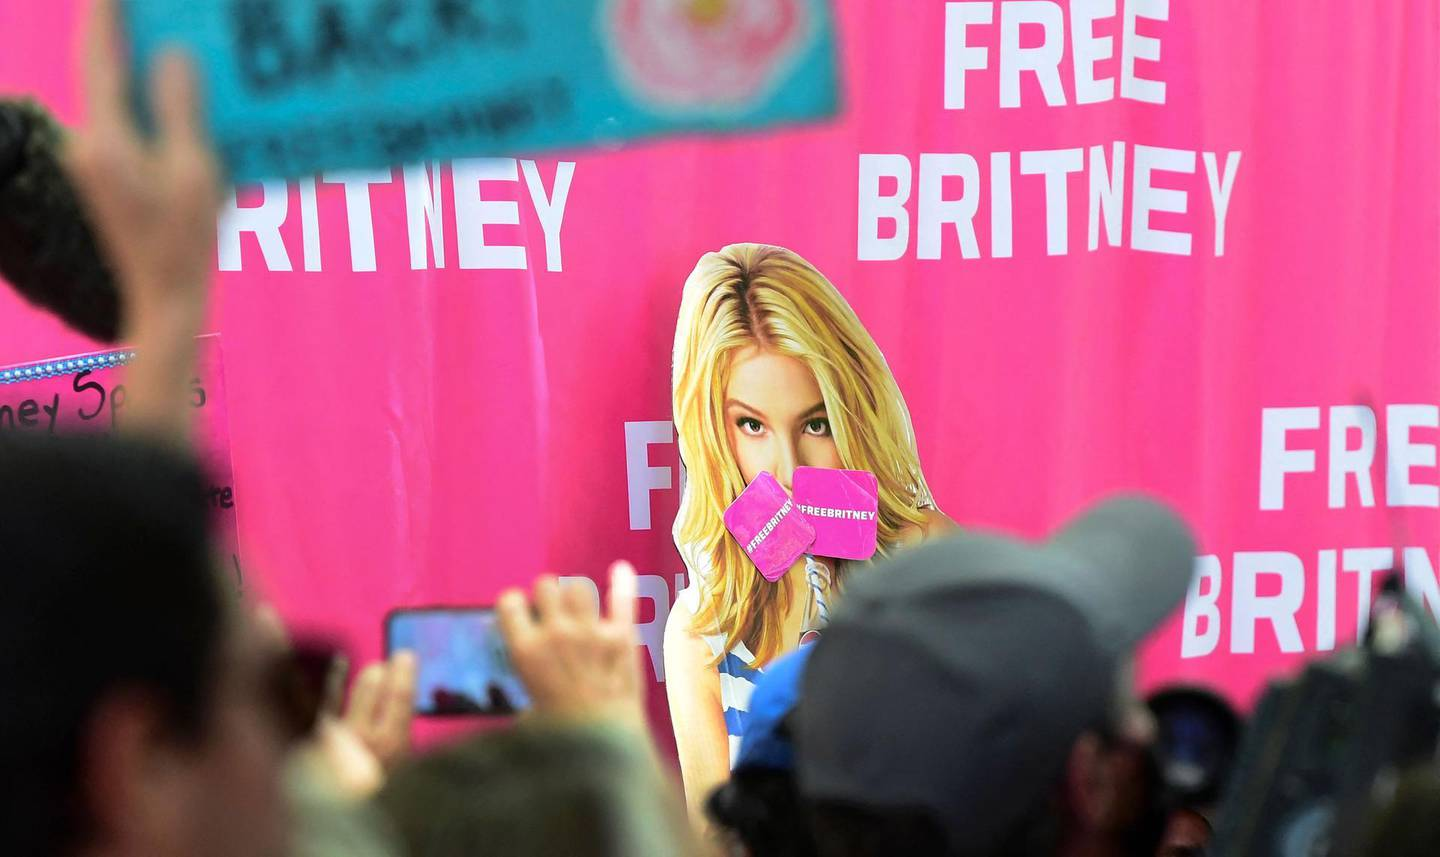 """Fans and supporters of Britney Spears gather outside the County Courthouse in Los Angeles, California on June 23, 2021, during a scheduled hearing in Britney Spears' conservatorship case.  Pop singer Britney Spears urged a US judge on June 23, to end a controversial guardianship that has given her father control over her affairs since 2008. """"I just want my life back. It's been 13 years and it's enough,"""" she told a court hearing in Los Angeles during an emotional 20-minute address via videolink.  / AFP / Frederic J. BROWN"""